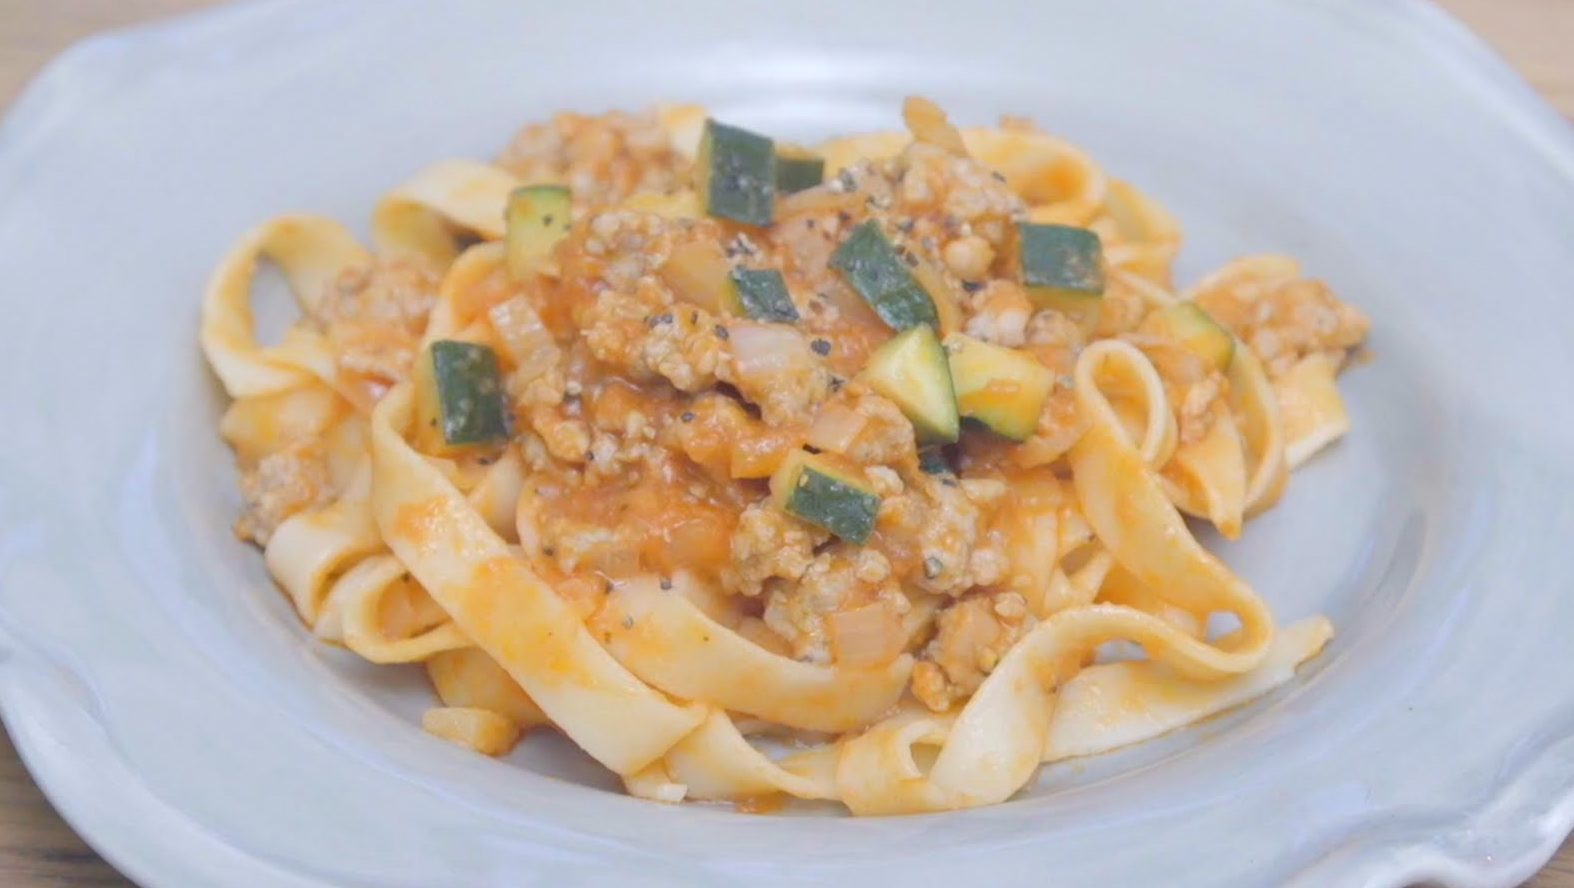 Sausage Zucchini and Tomato speedy pasta sauce recipe by The Chiappas